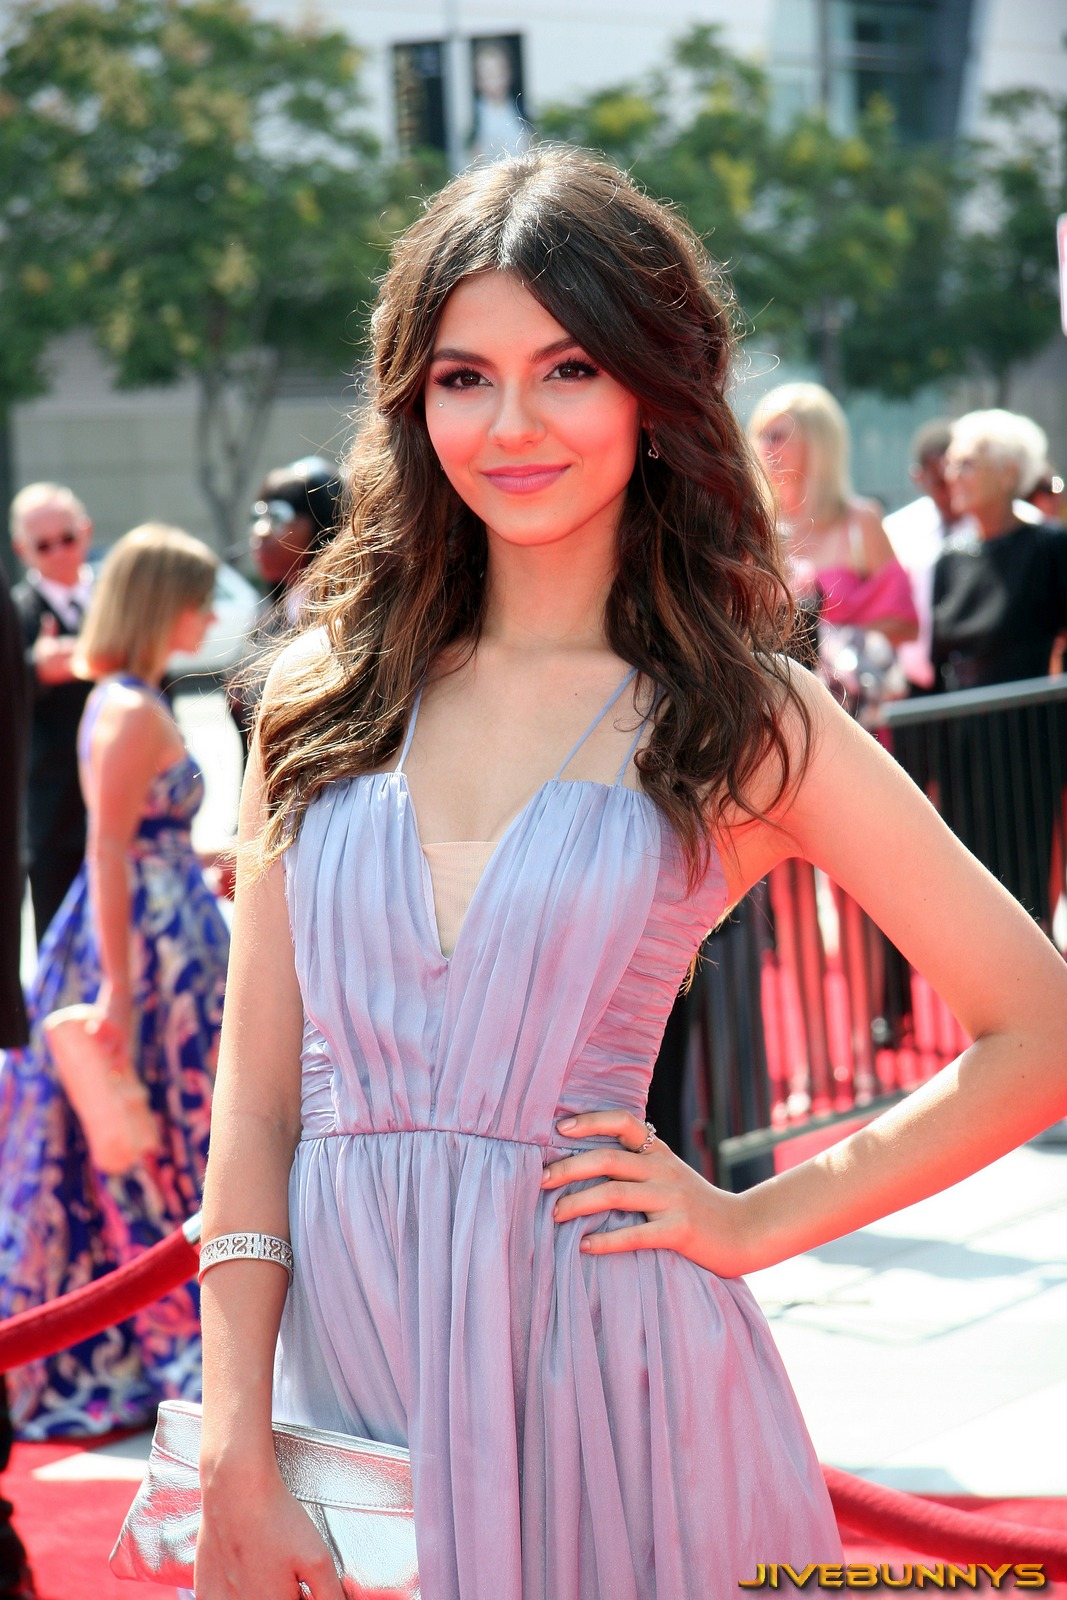 victoria justice songs, victoria justice twitter, victoria justice pictures, victoria justice gallery, victoria justice style, victoria justice music, songs by victoria justice, victoria justice, victoria justice boyfriend, victoria justice hair, victoria justice haistyles, victoria justice photos, victoria justice pics